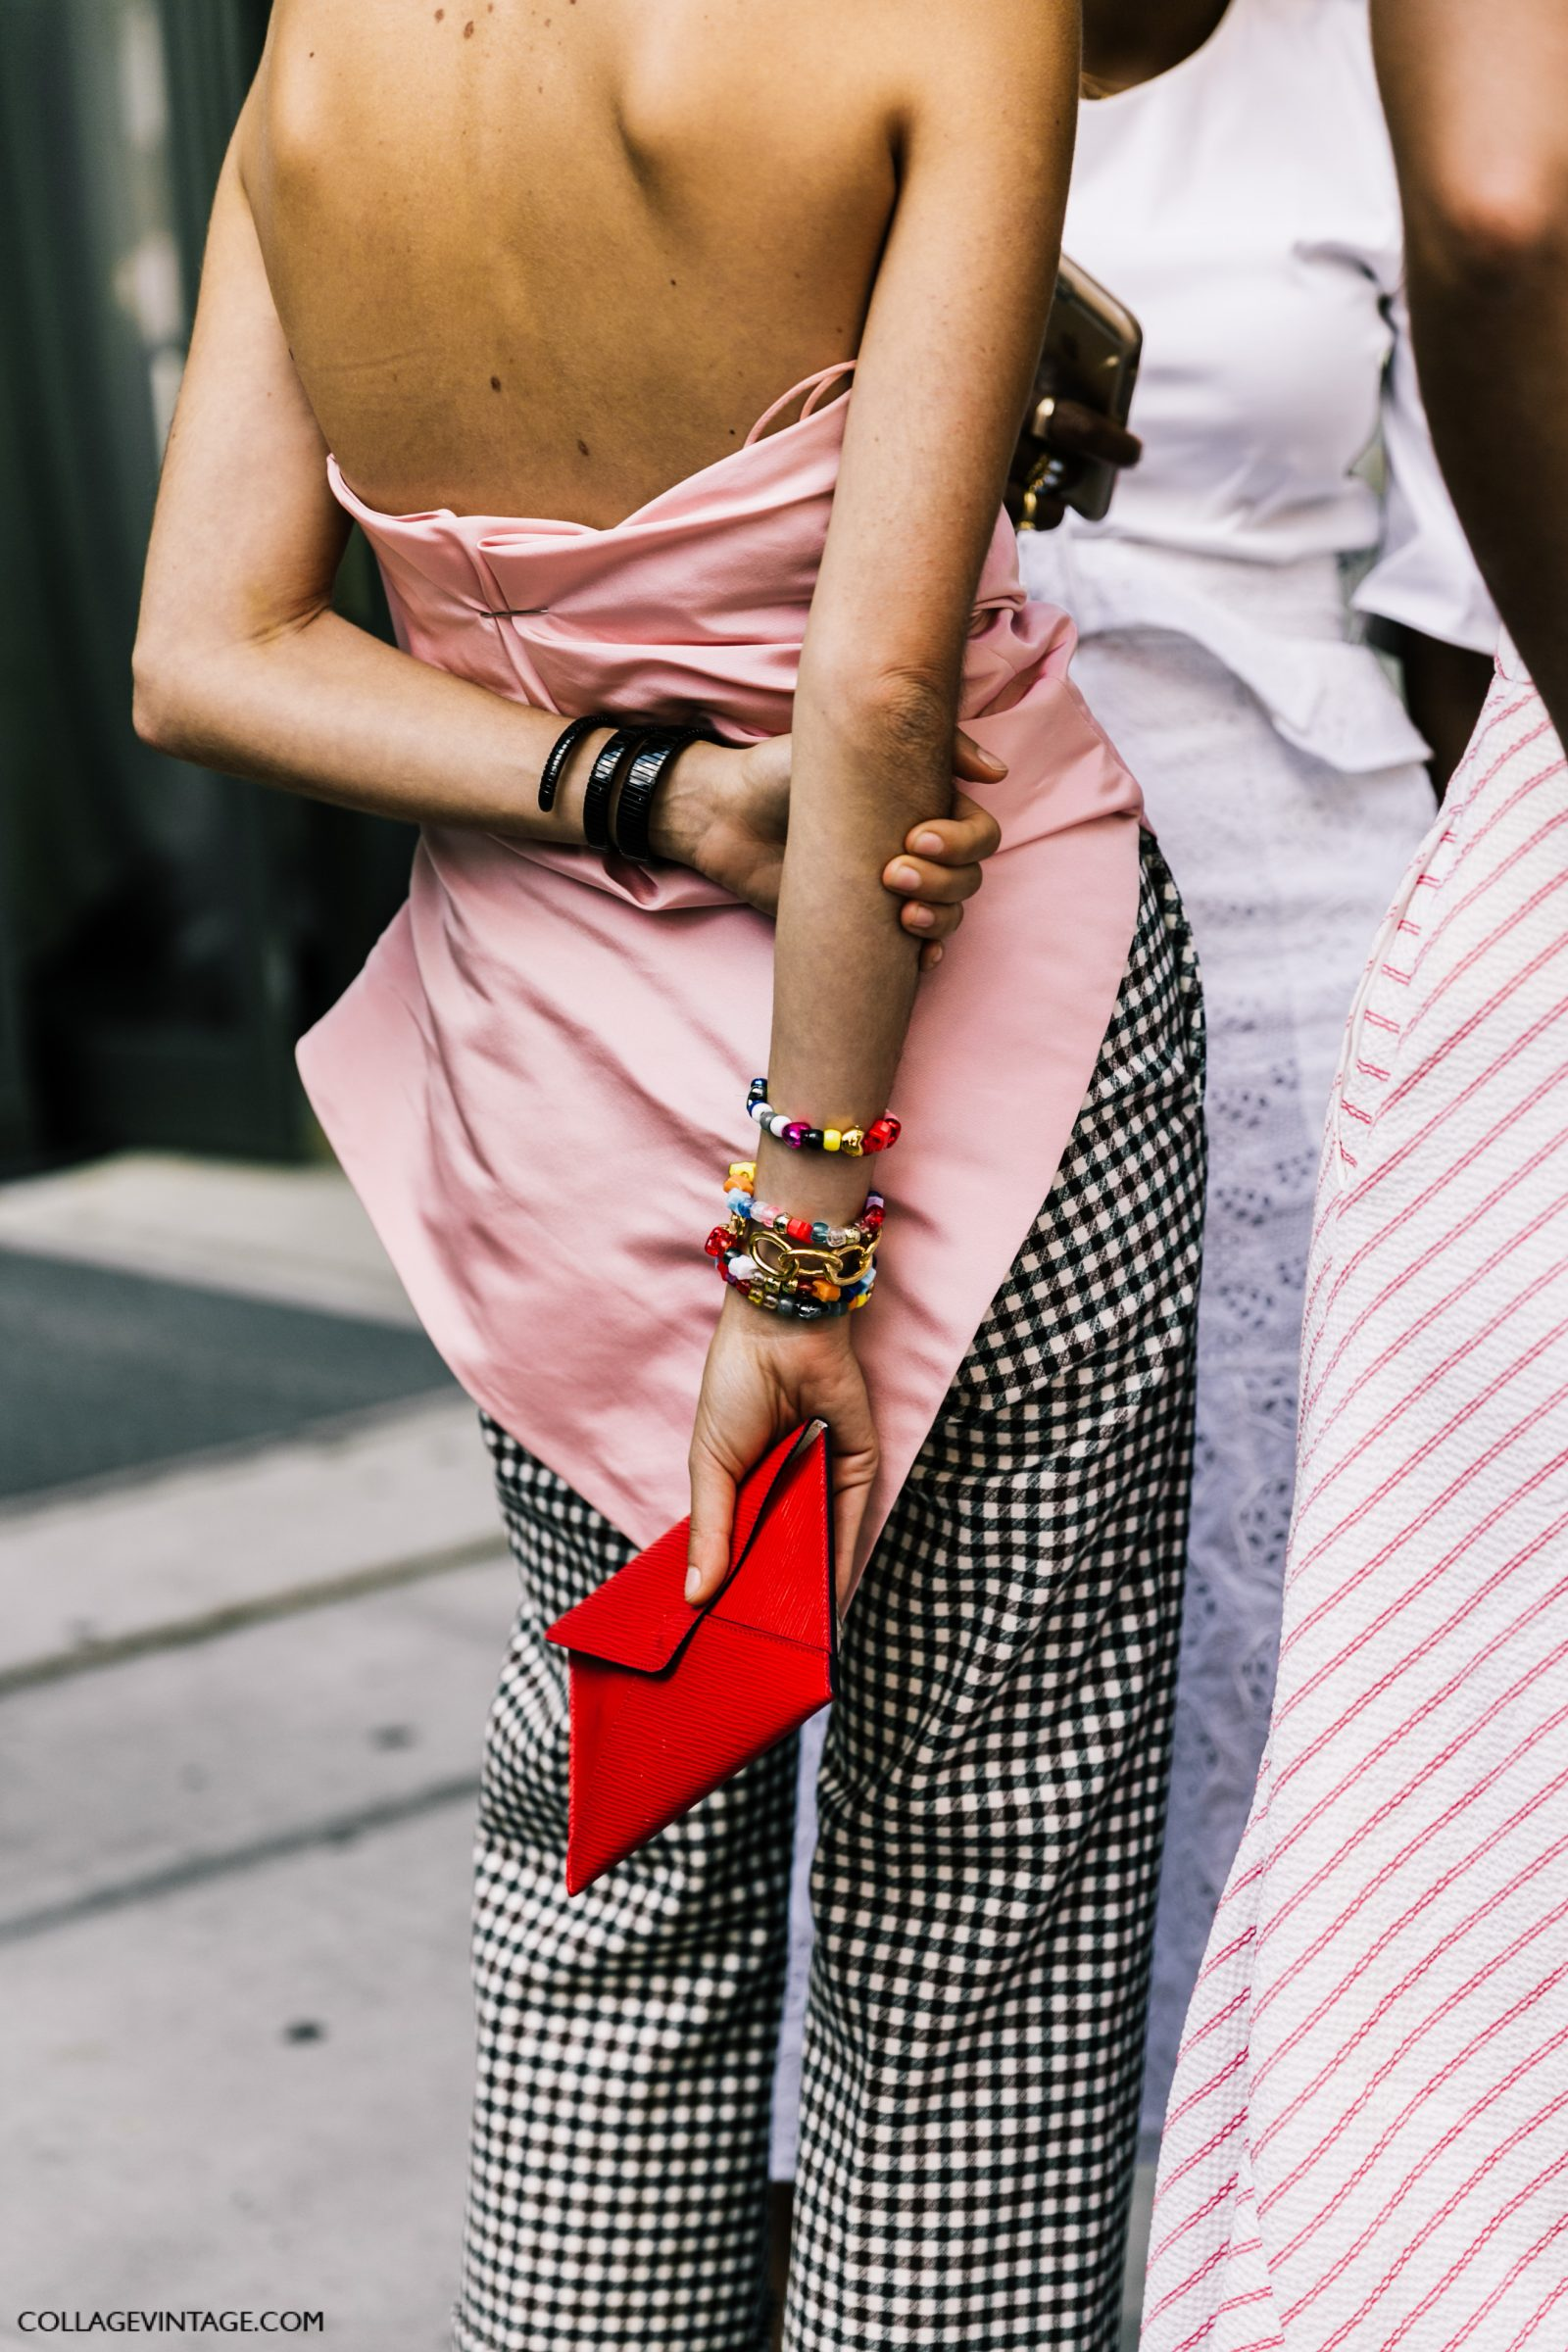 nyfw-new_york_fashion_week_ss17-street_style-outfits-collage_vintage-vintage-phillip_lim-the-row-proenza_schouler-rossie_aussolin-154